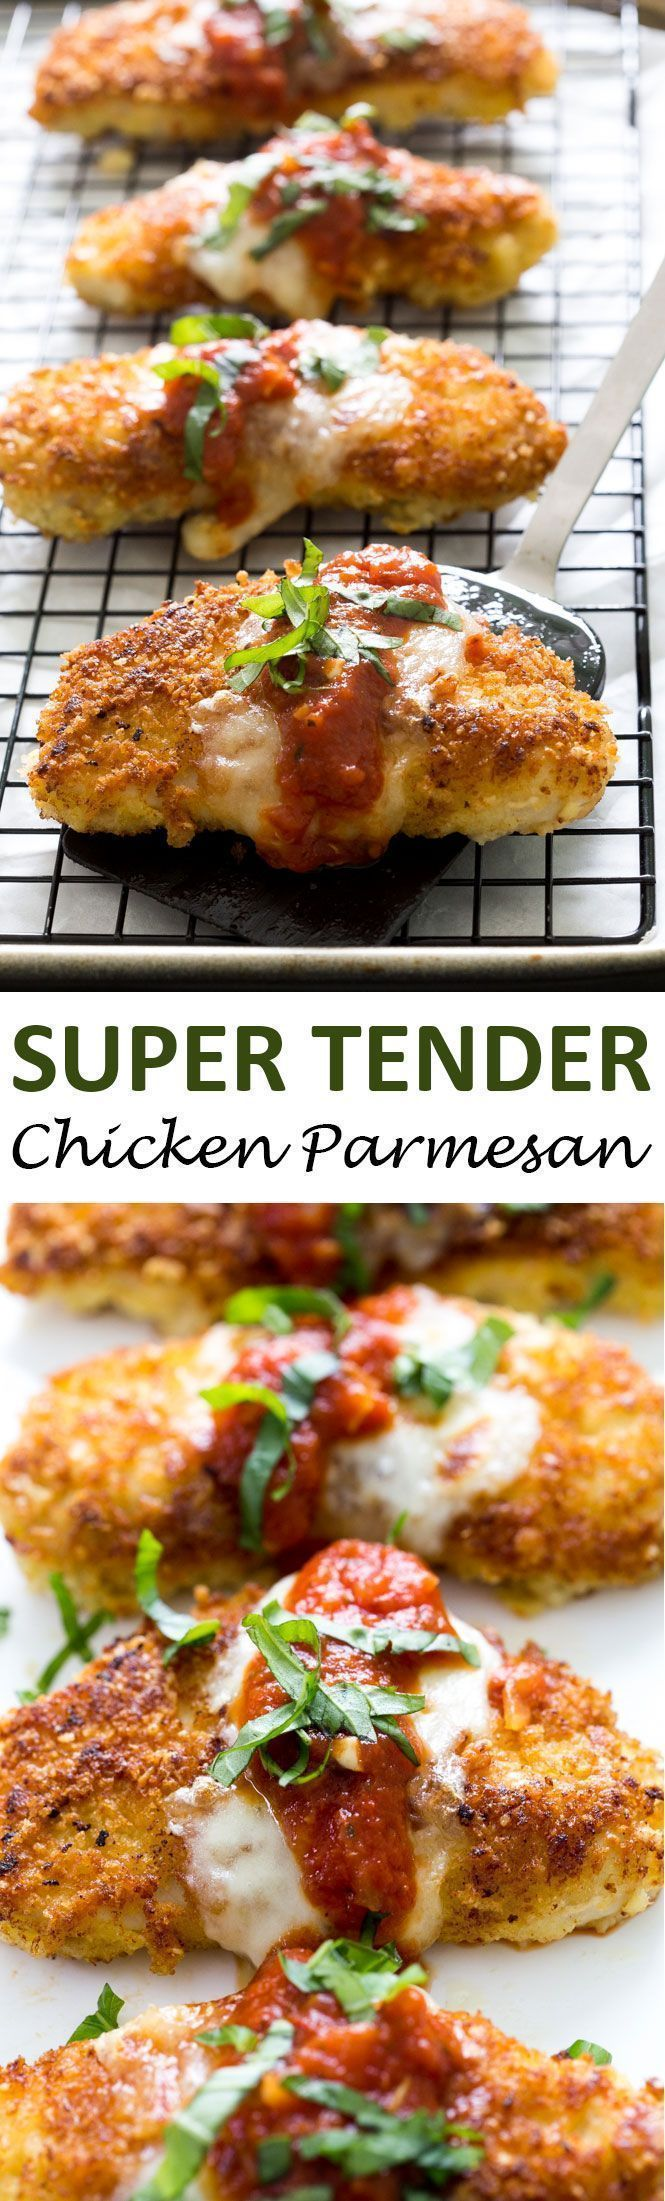 The BEST Chicken Parmesan. A quick and easy 30 minute weeknight meal everyone will